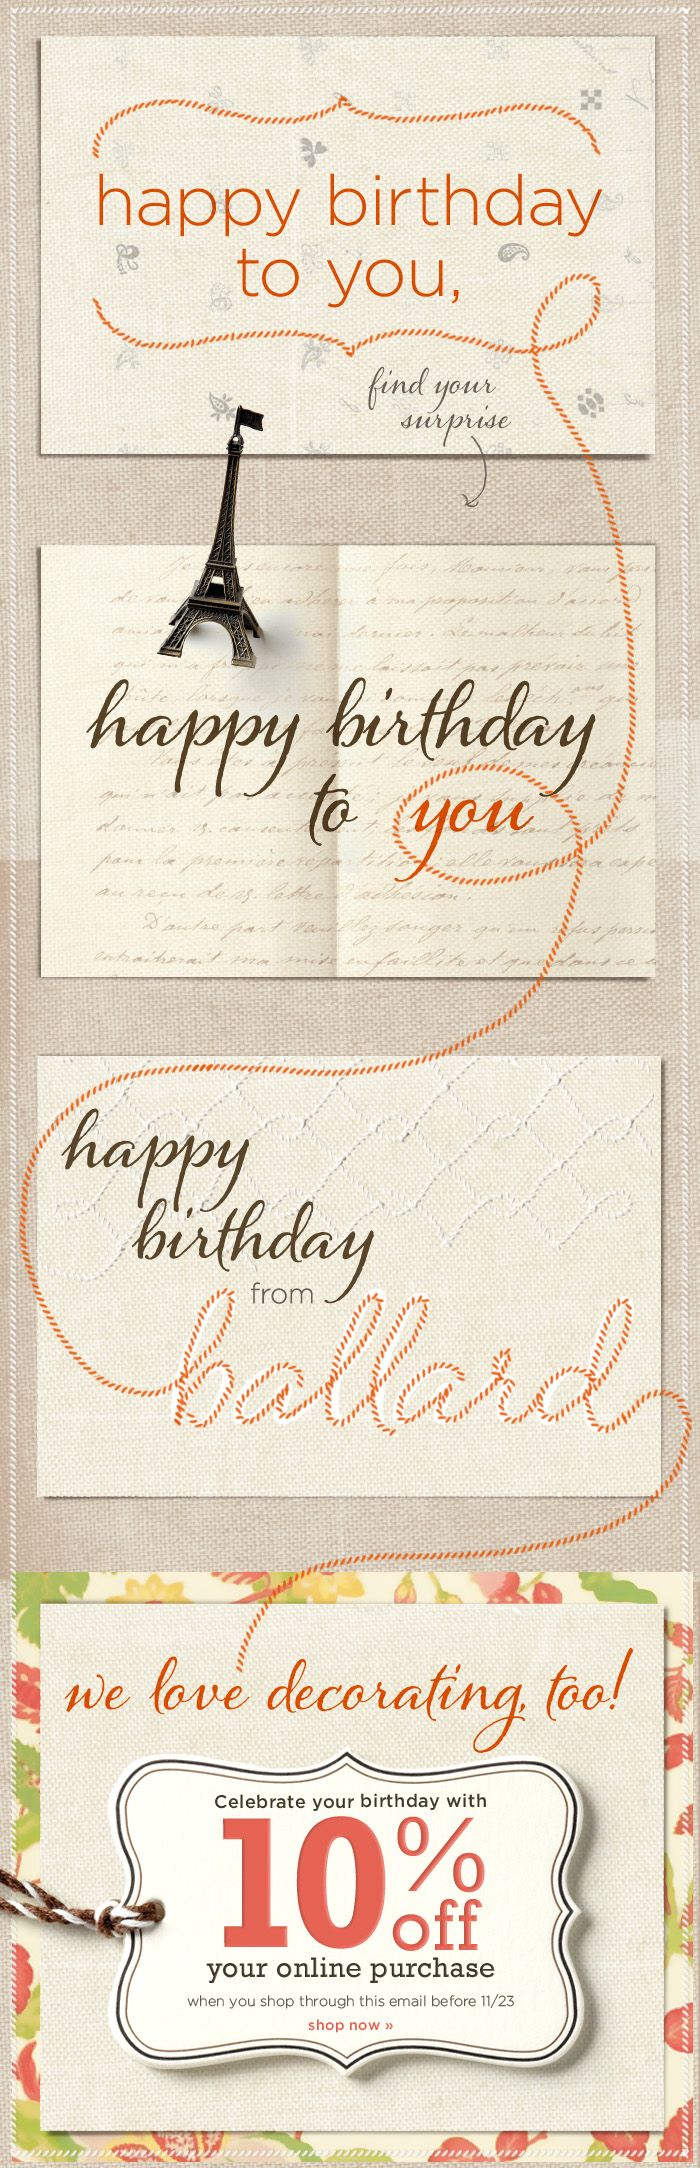 scrollable birthday email Ballard.